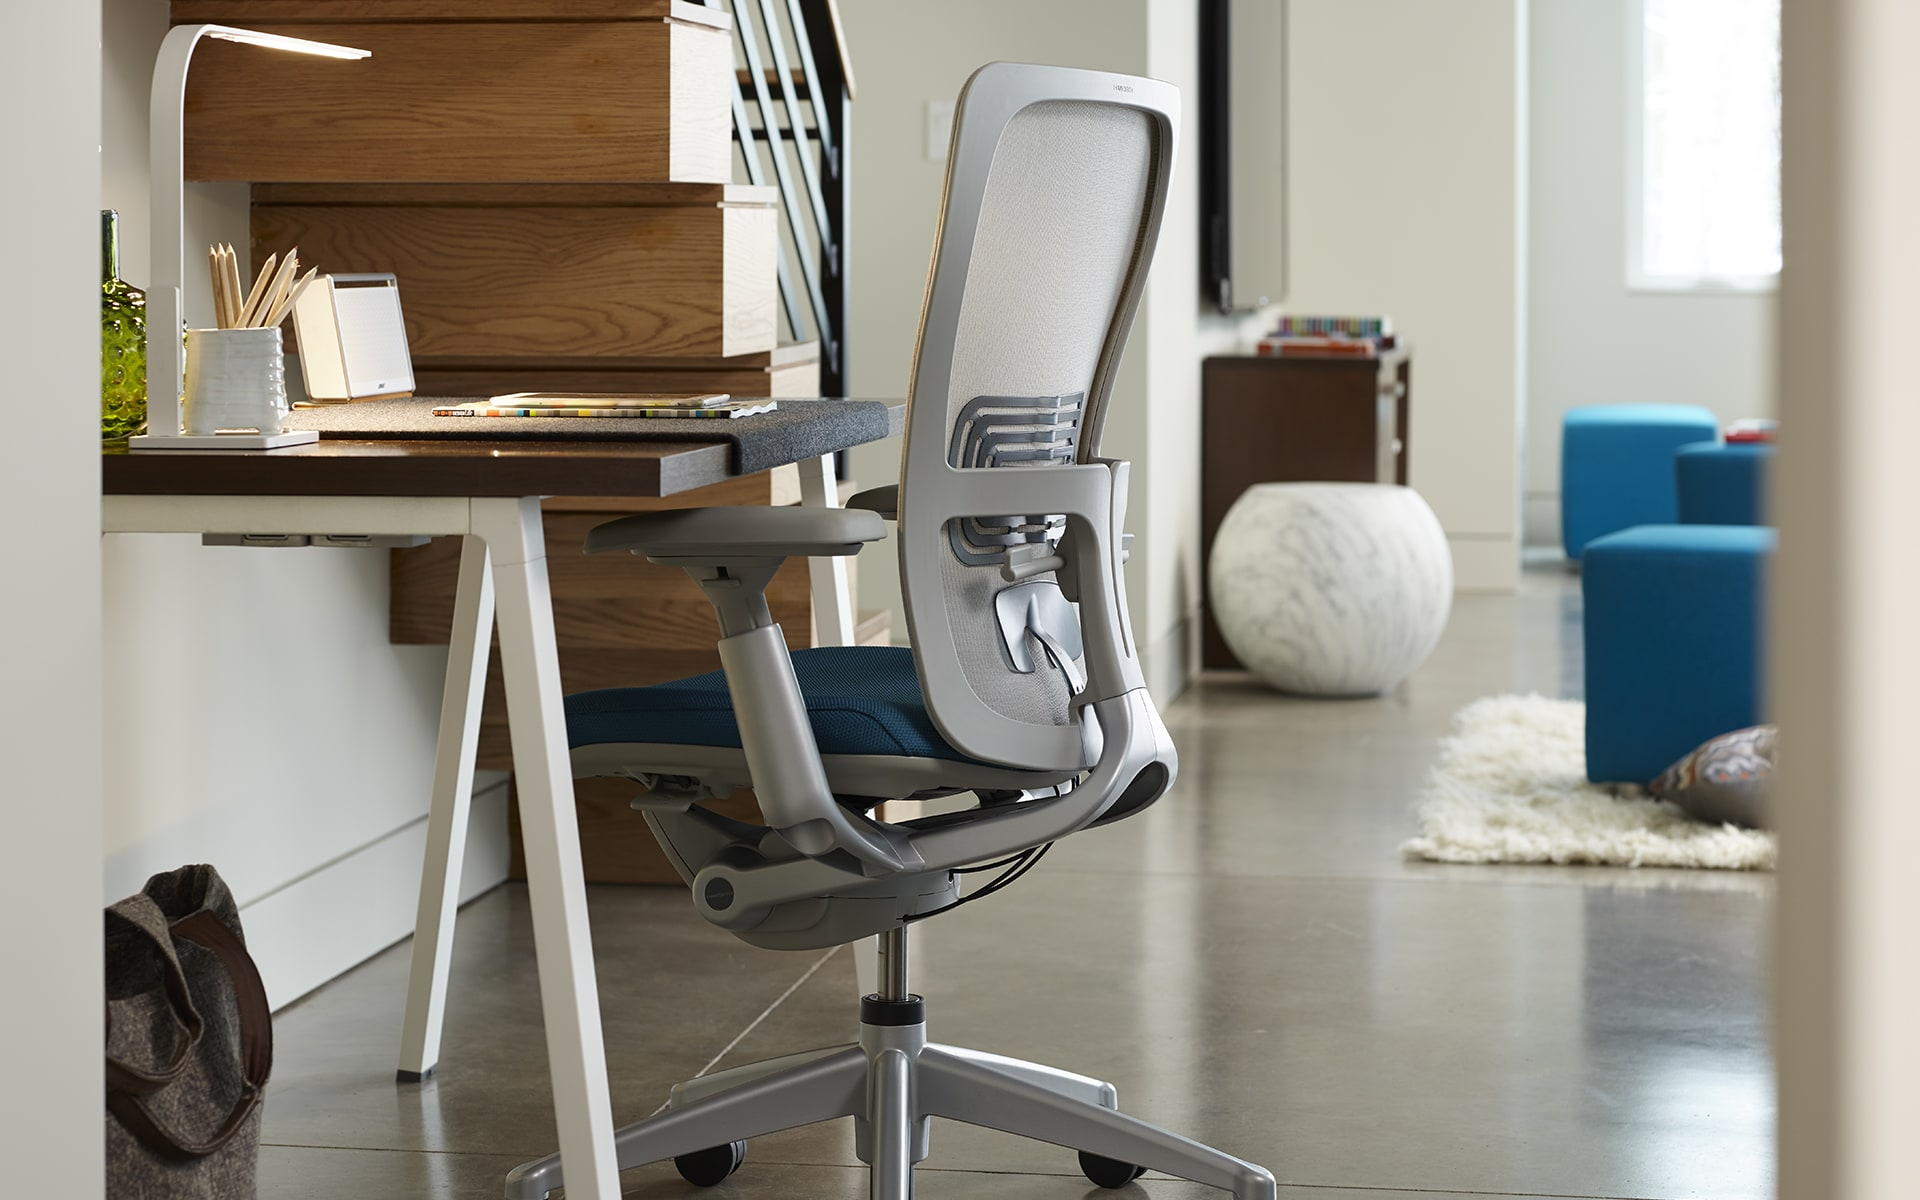 Haworth Zody office chair by ITO Design with gray backrest and blue upholstery at modern home workplace